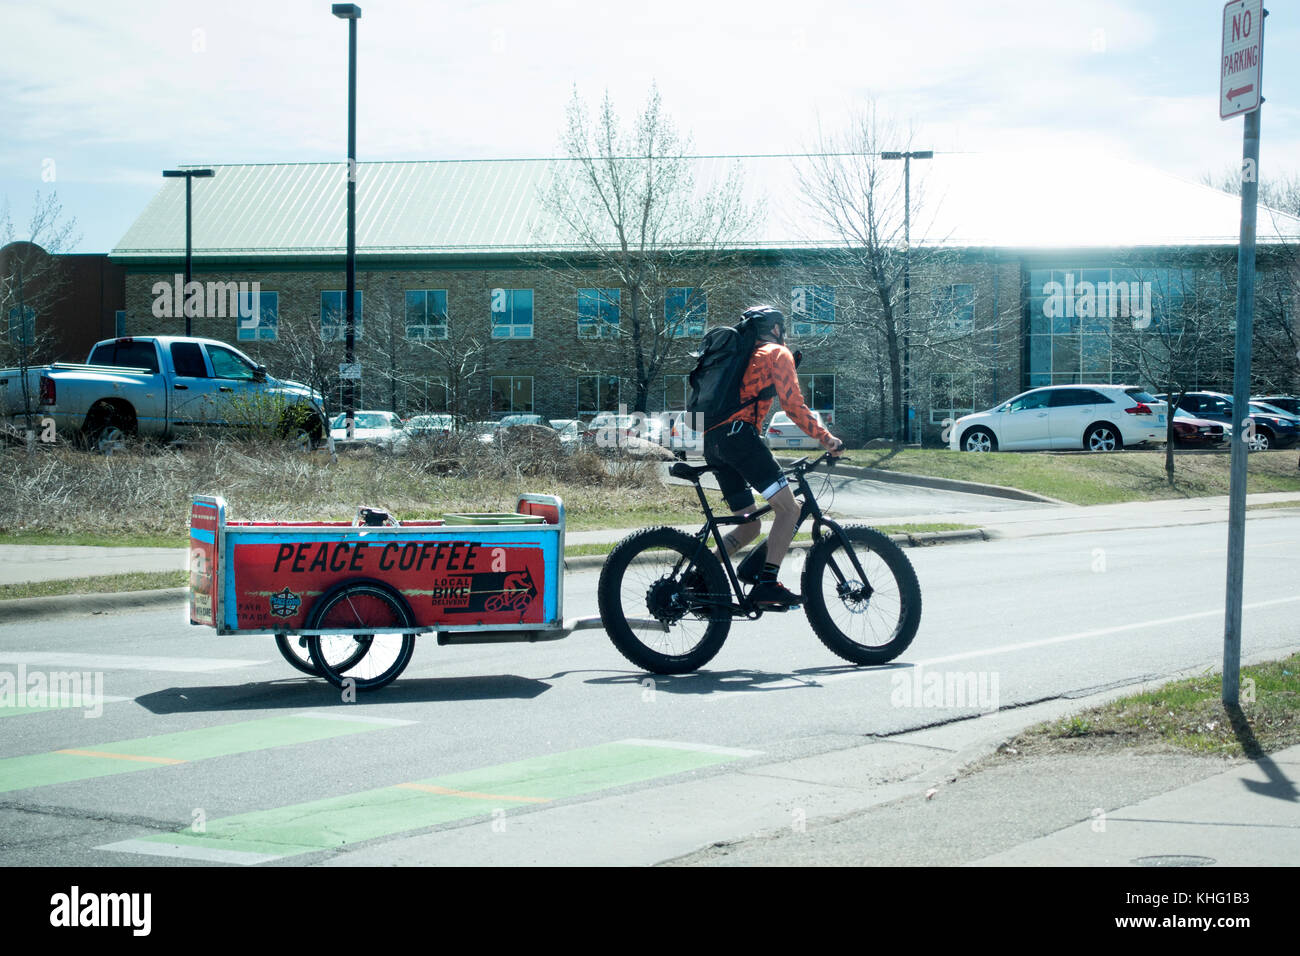 Bicycler delivering Peace Coffee to customers in a trailer pulled by the bicycle. Minneapolis Minnesota MN USA - Stock Image